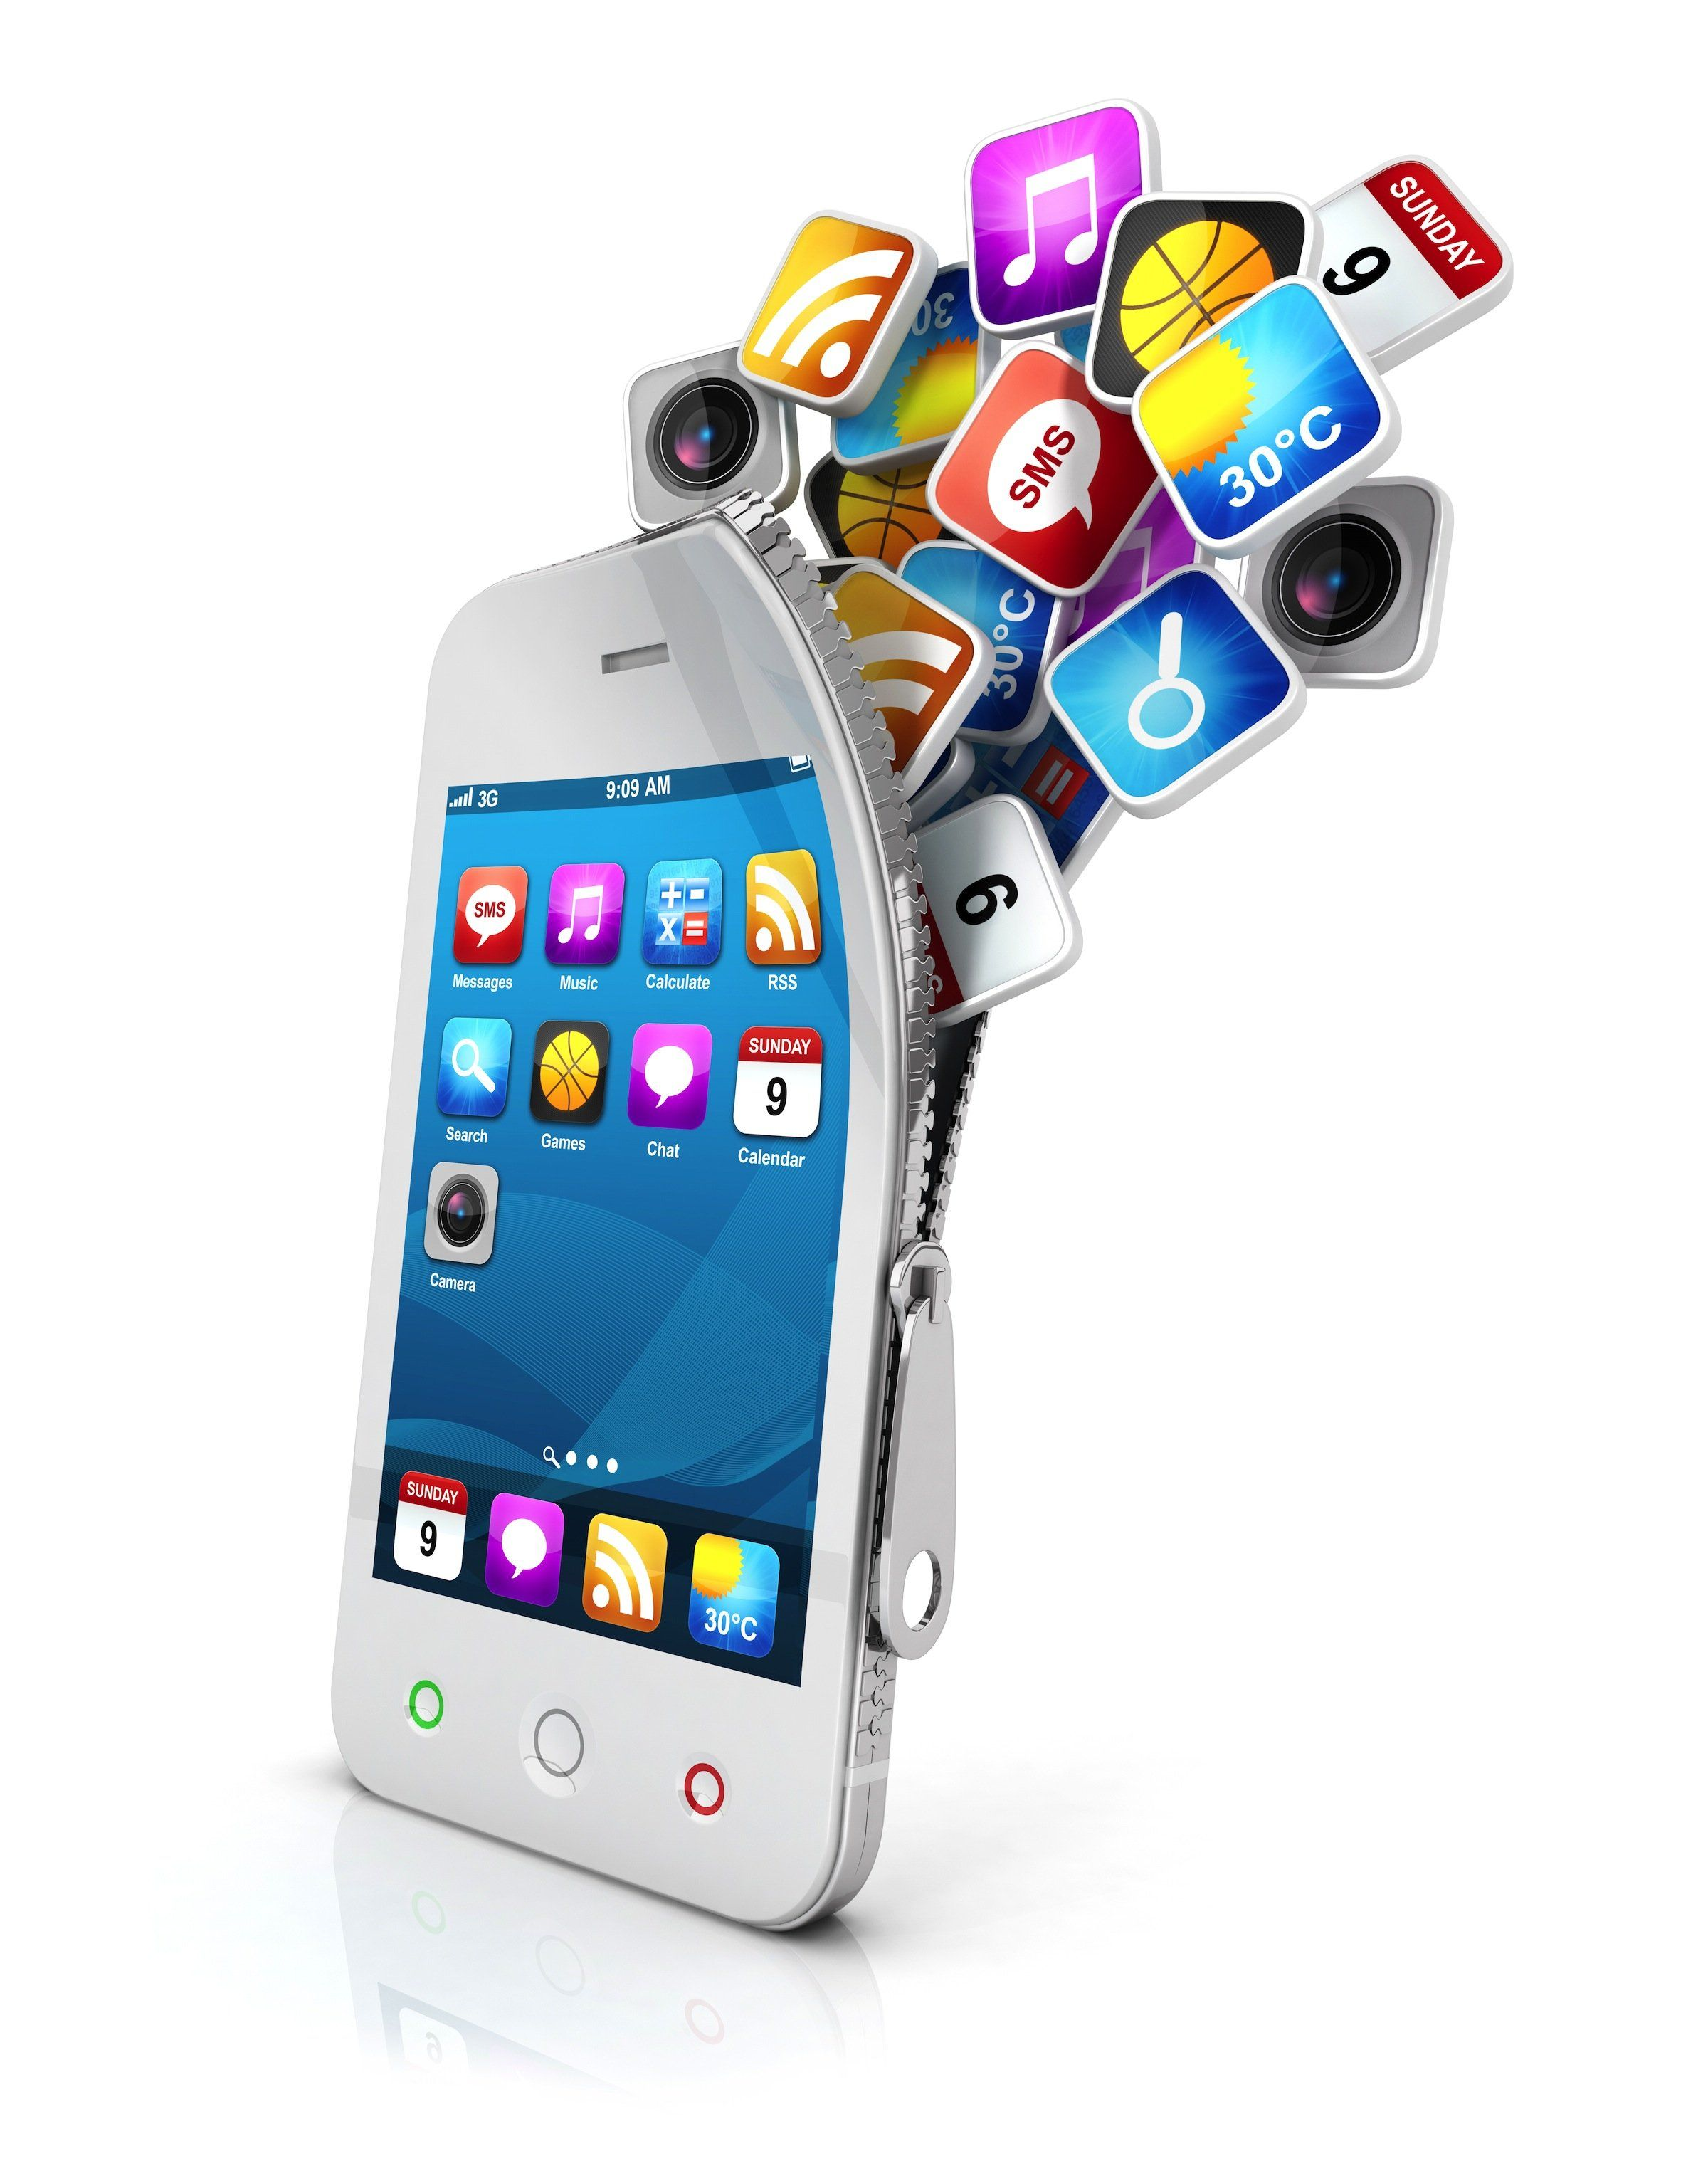 94b2d6afd18ad51ab4259025786797ca - Agence Développement Application Mobile Android